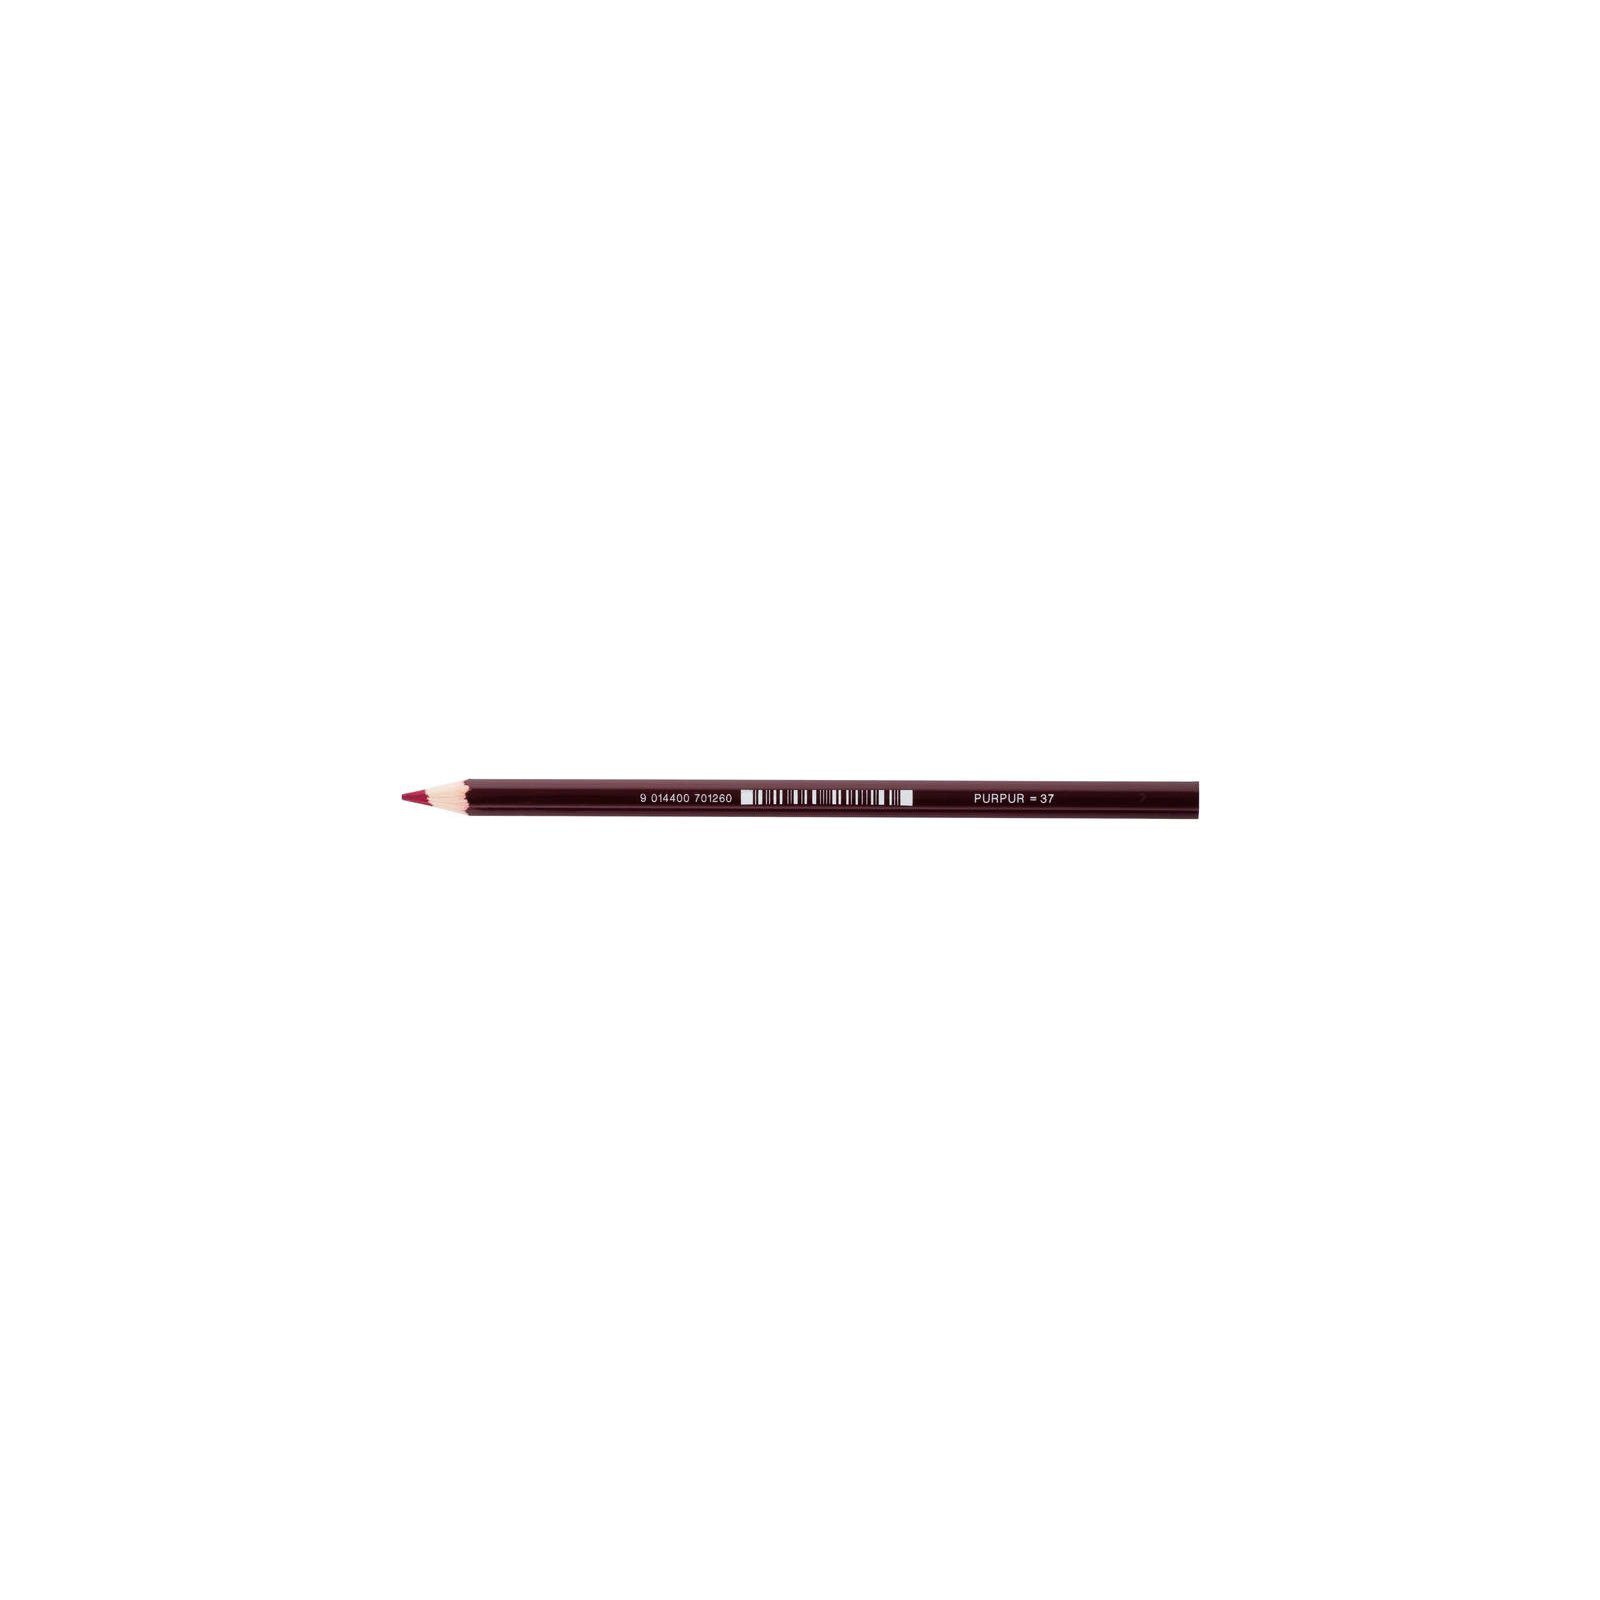 JOLLY Buntstift Supersticks Classic Einzelstift Purpur = 37